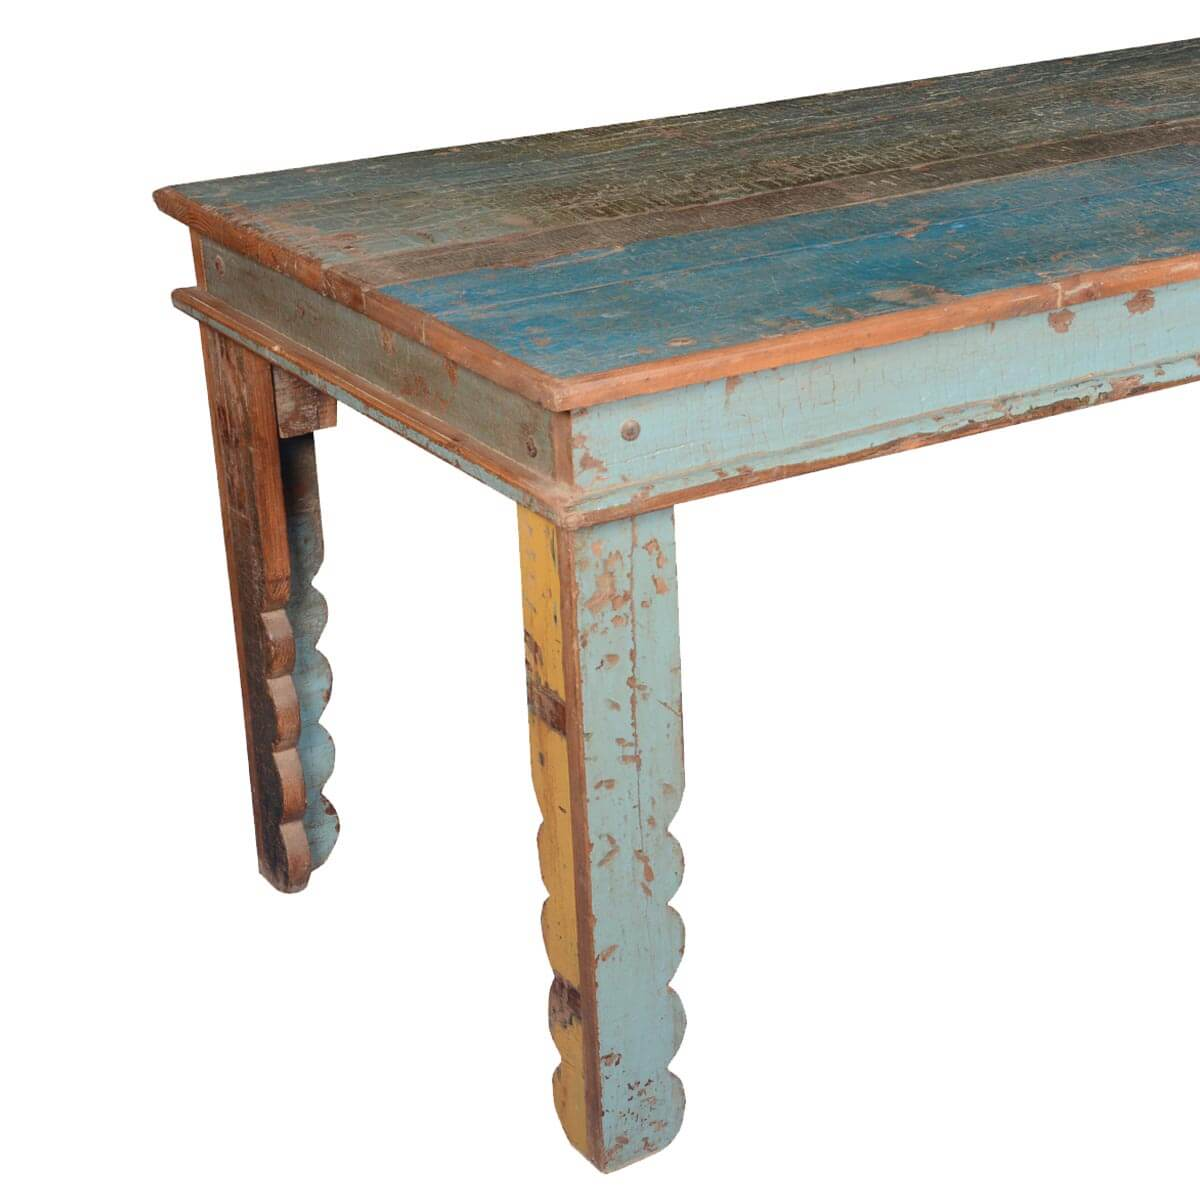 Kitchen Table With Bench Rustic Kitchen Tables And Table: Rustic Farmhouse Reclaimed Wood Rectangular Kitchen Table